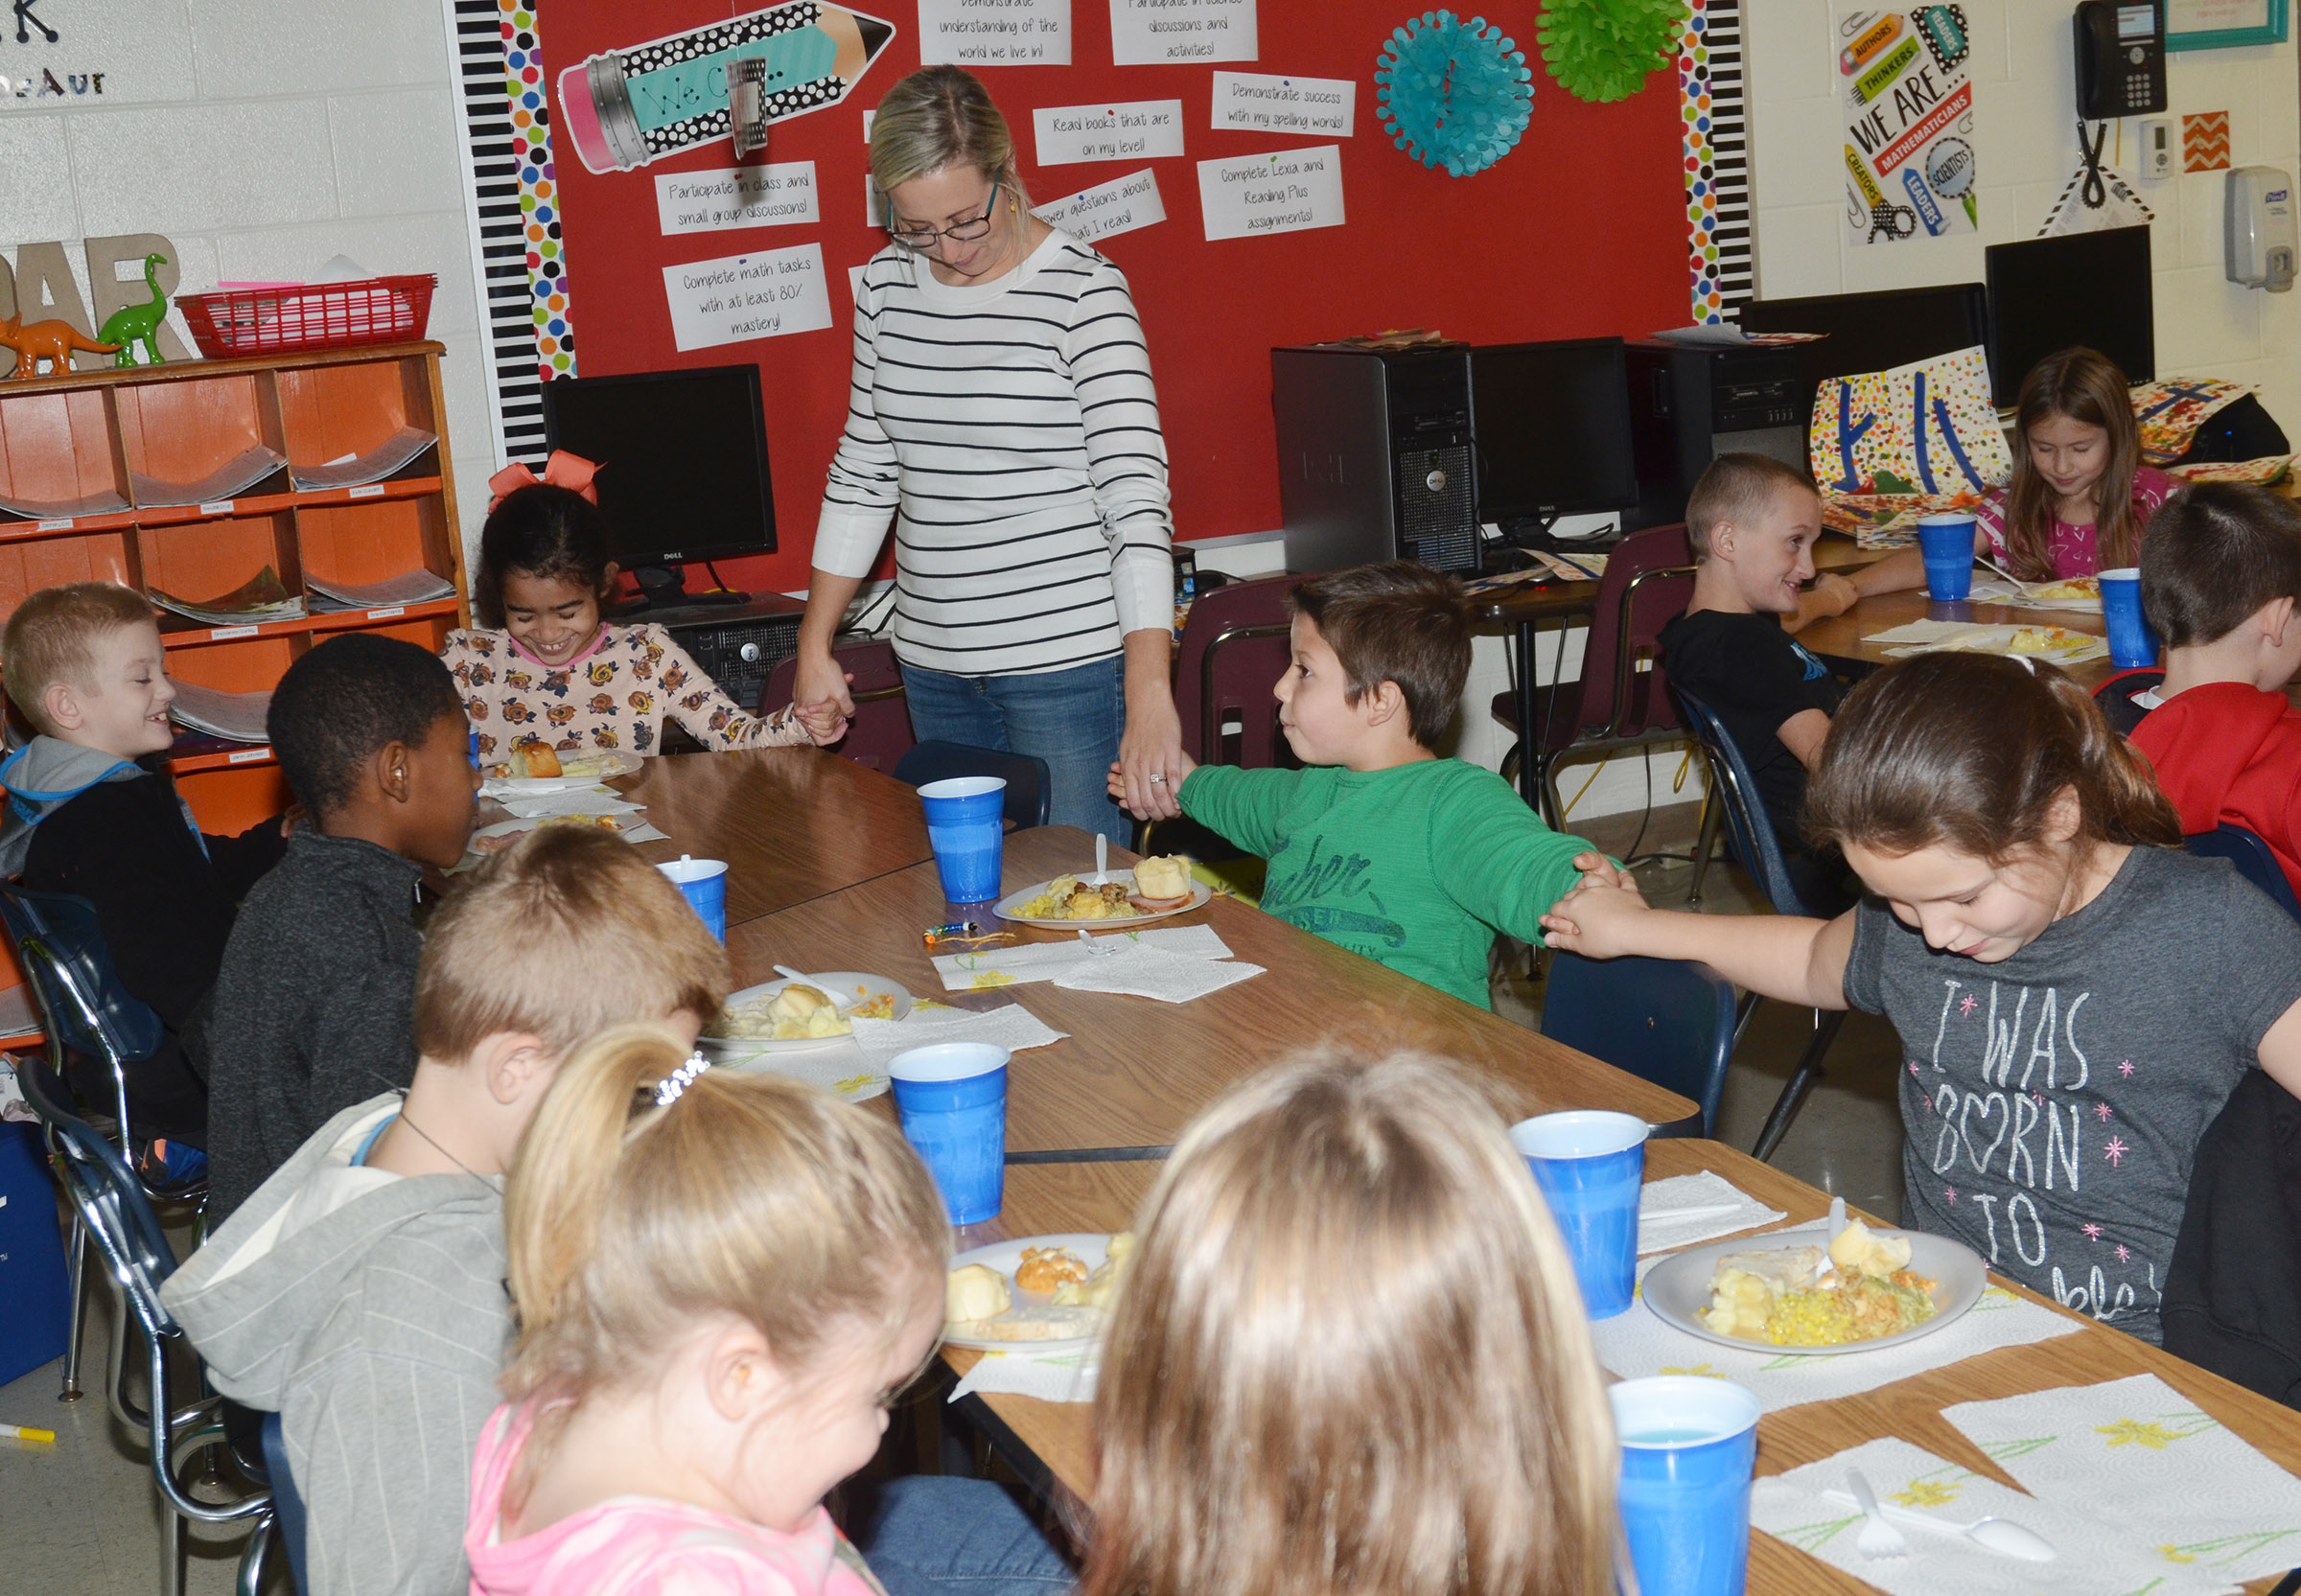 CES third-grade teacher Hannah Jones and her students pray together before enjoying their Thanksgiving feast.